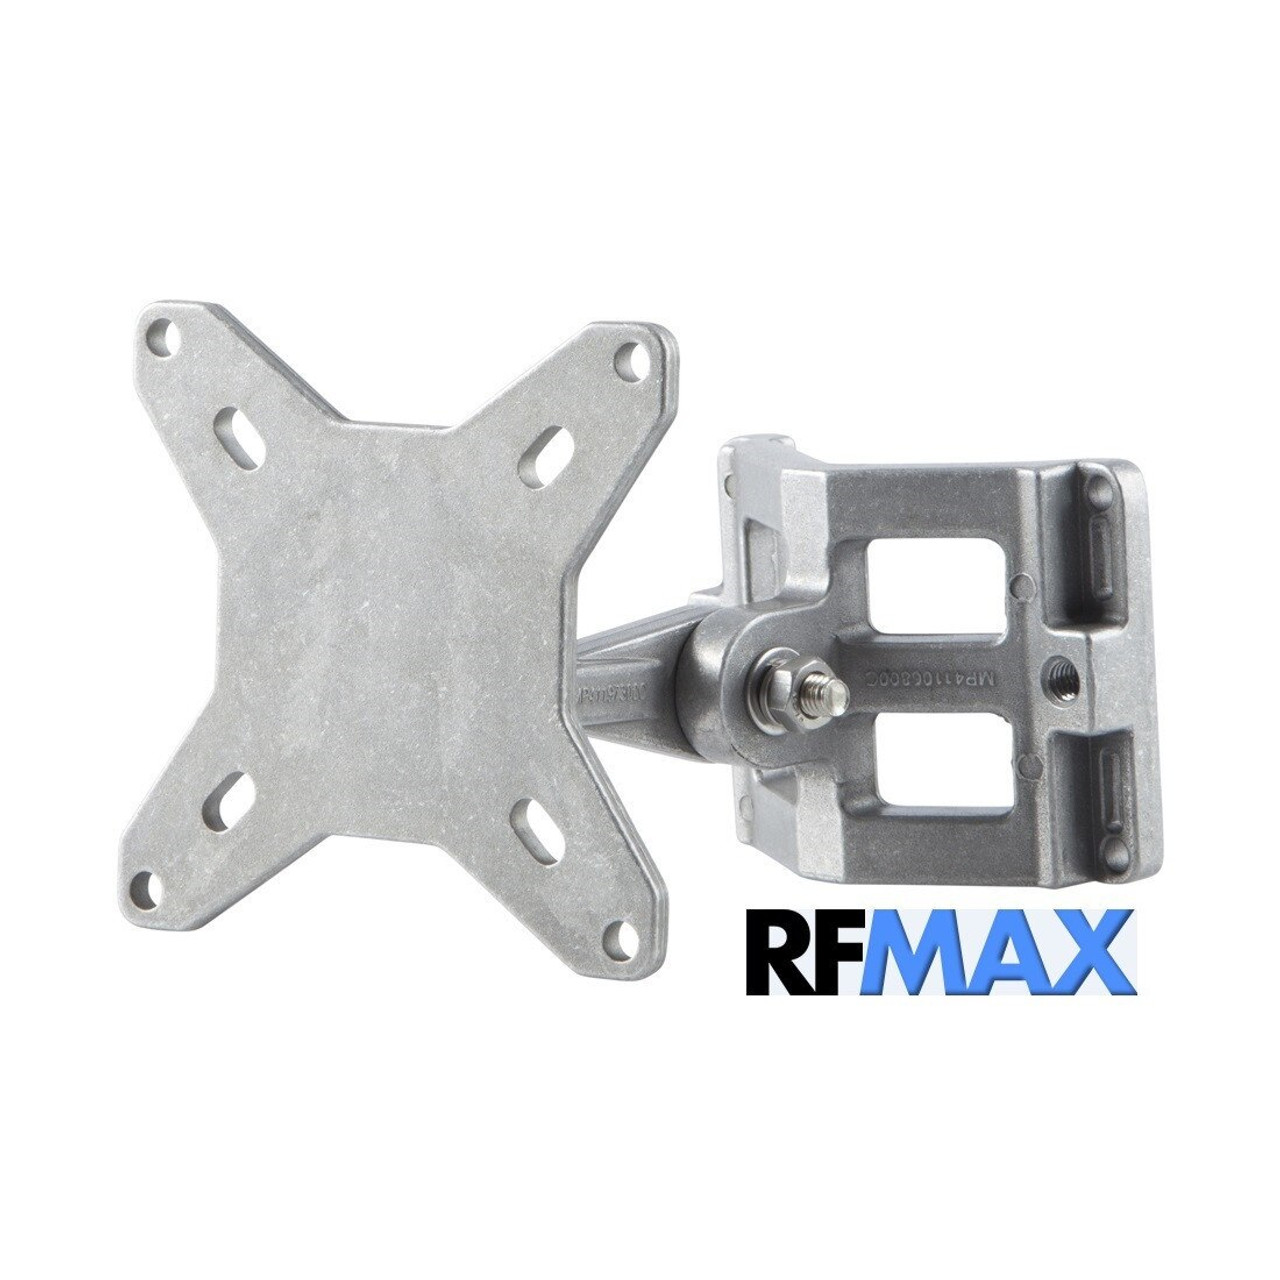 RFMAX-HDMNT-100MM Heavy Duty Indoor Outdoor Mounting Bracket for Antenna,  Computer Monitor or TV  100mm VESA